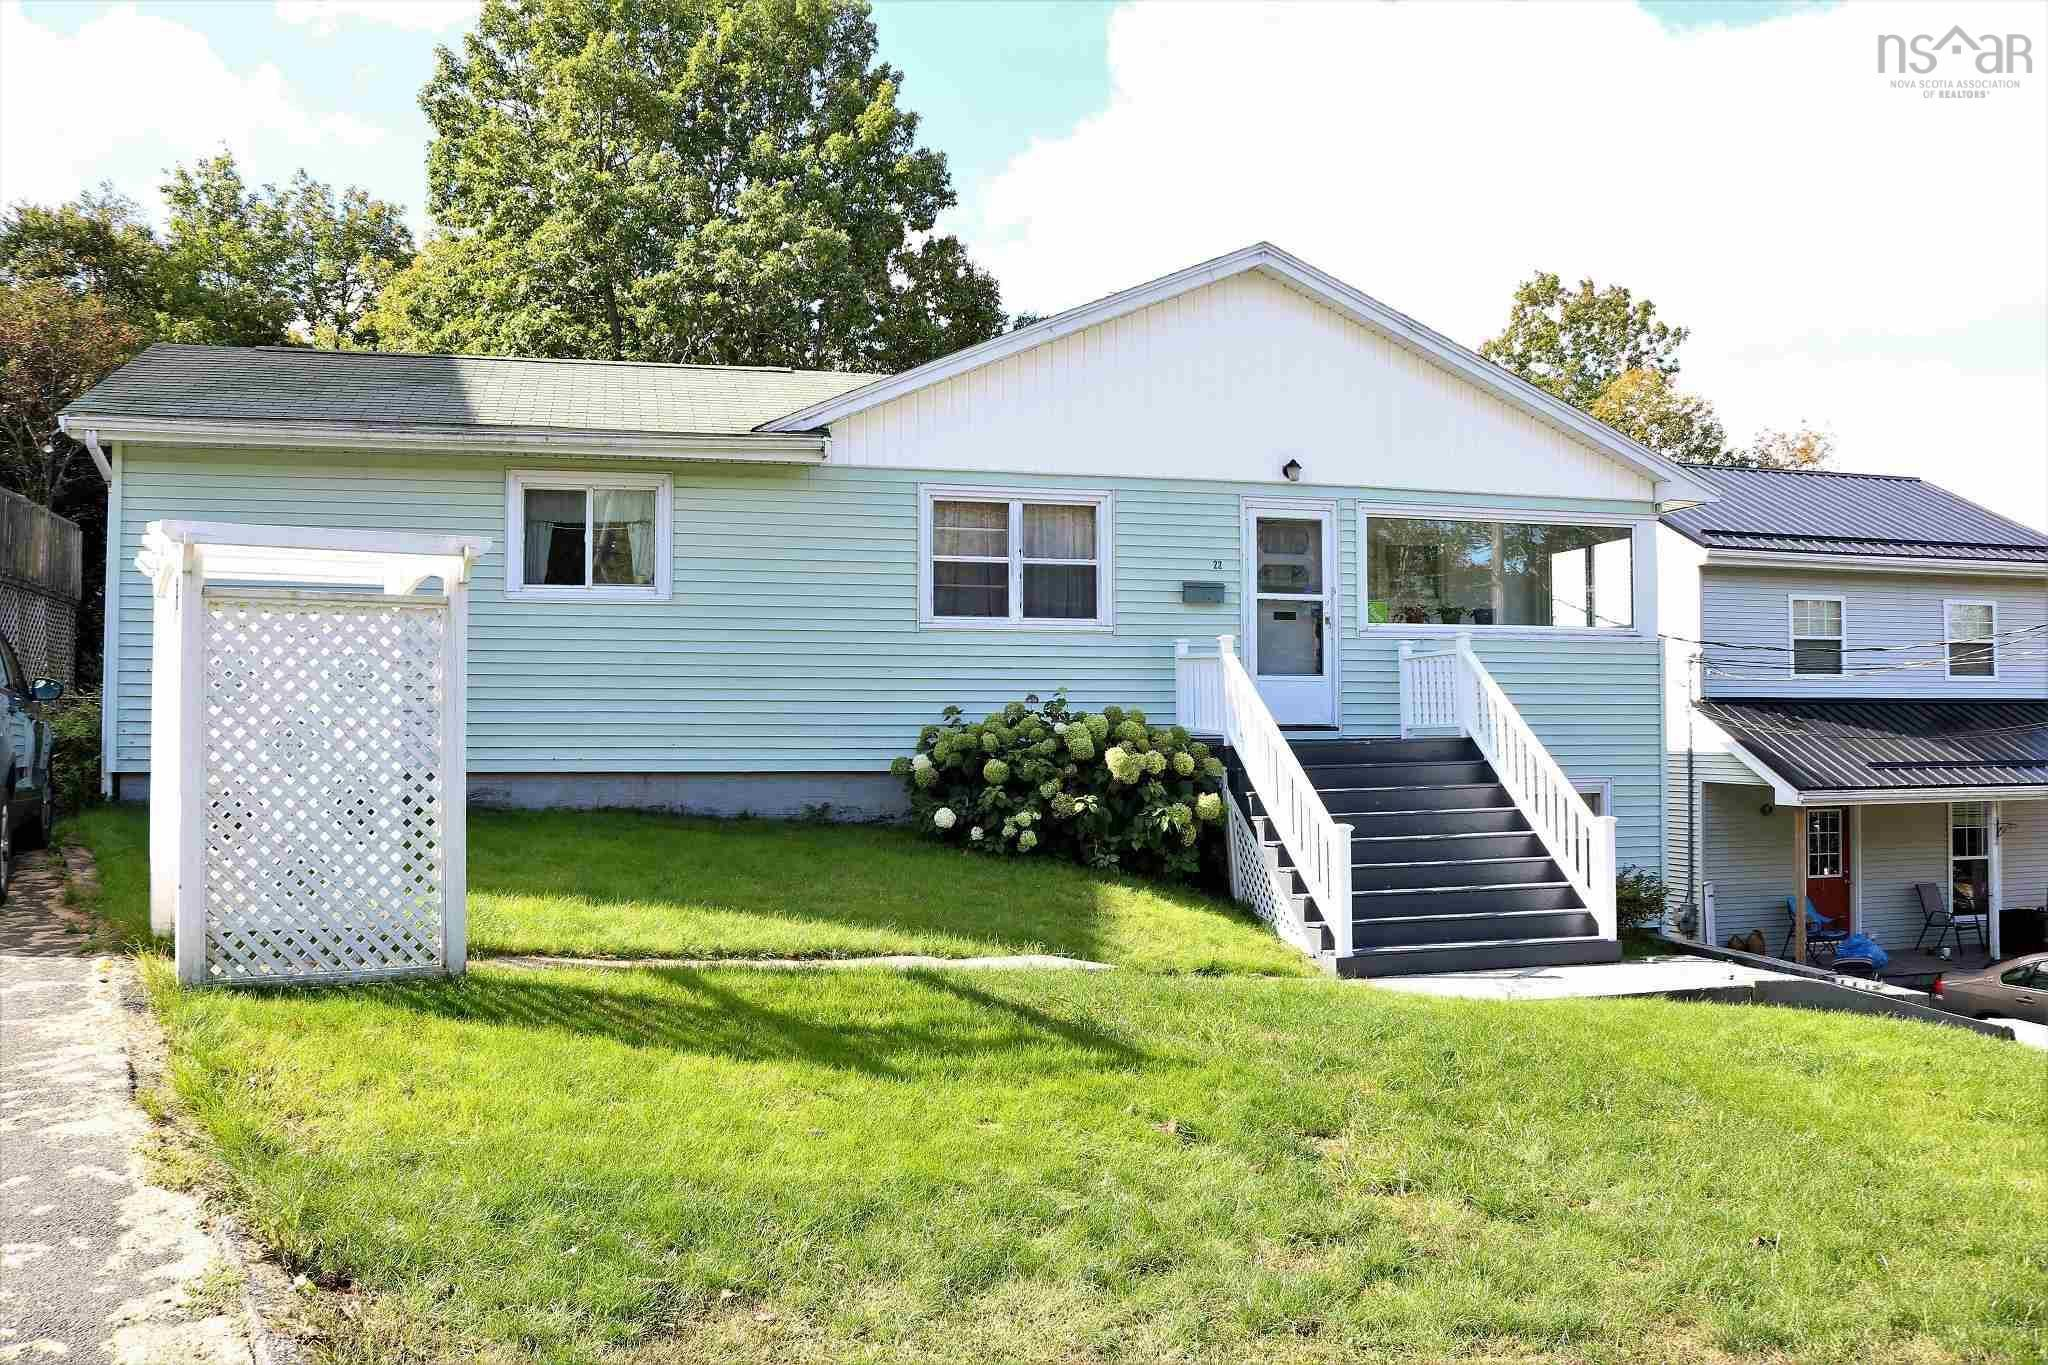 Main Photo: 22 Glenwood Avenue in Dartmouth: 12-Southdale, Manor Park Multi-Family for sale (Halifax-Dartmouth)  : MLS®# 202125195